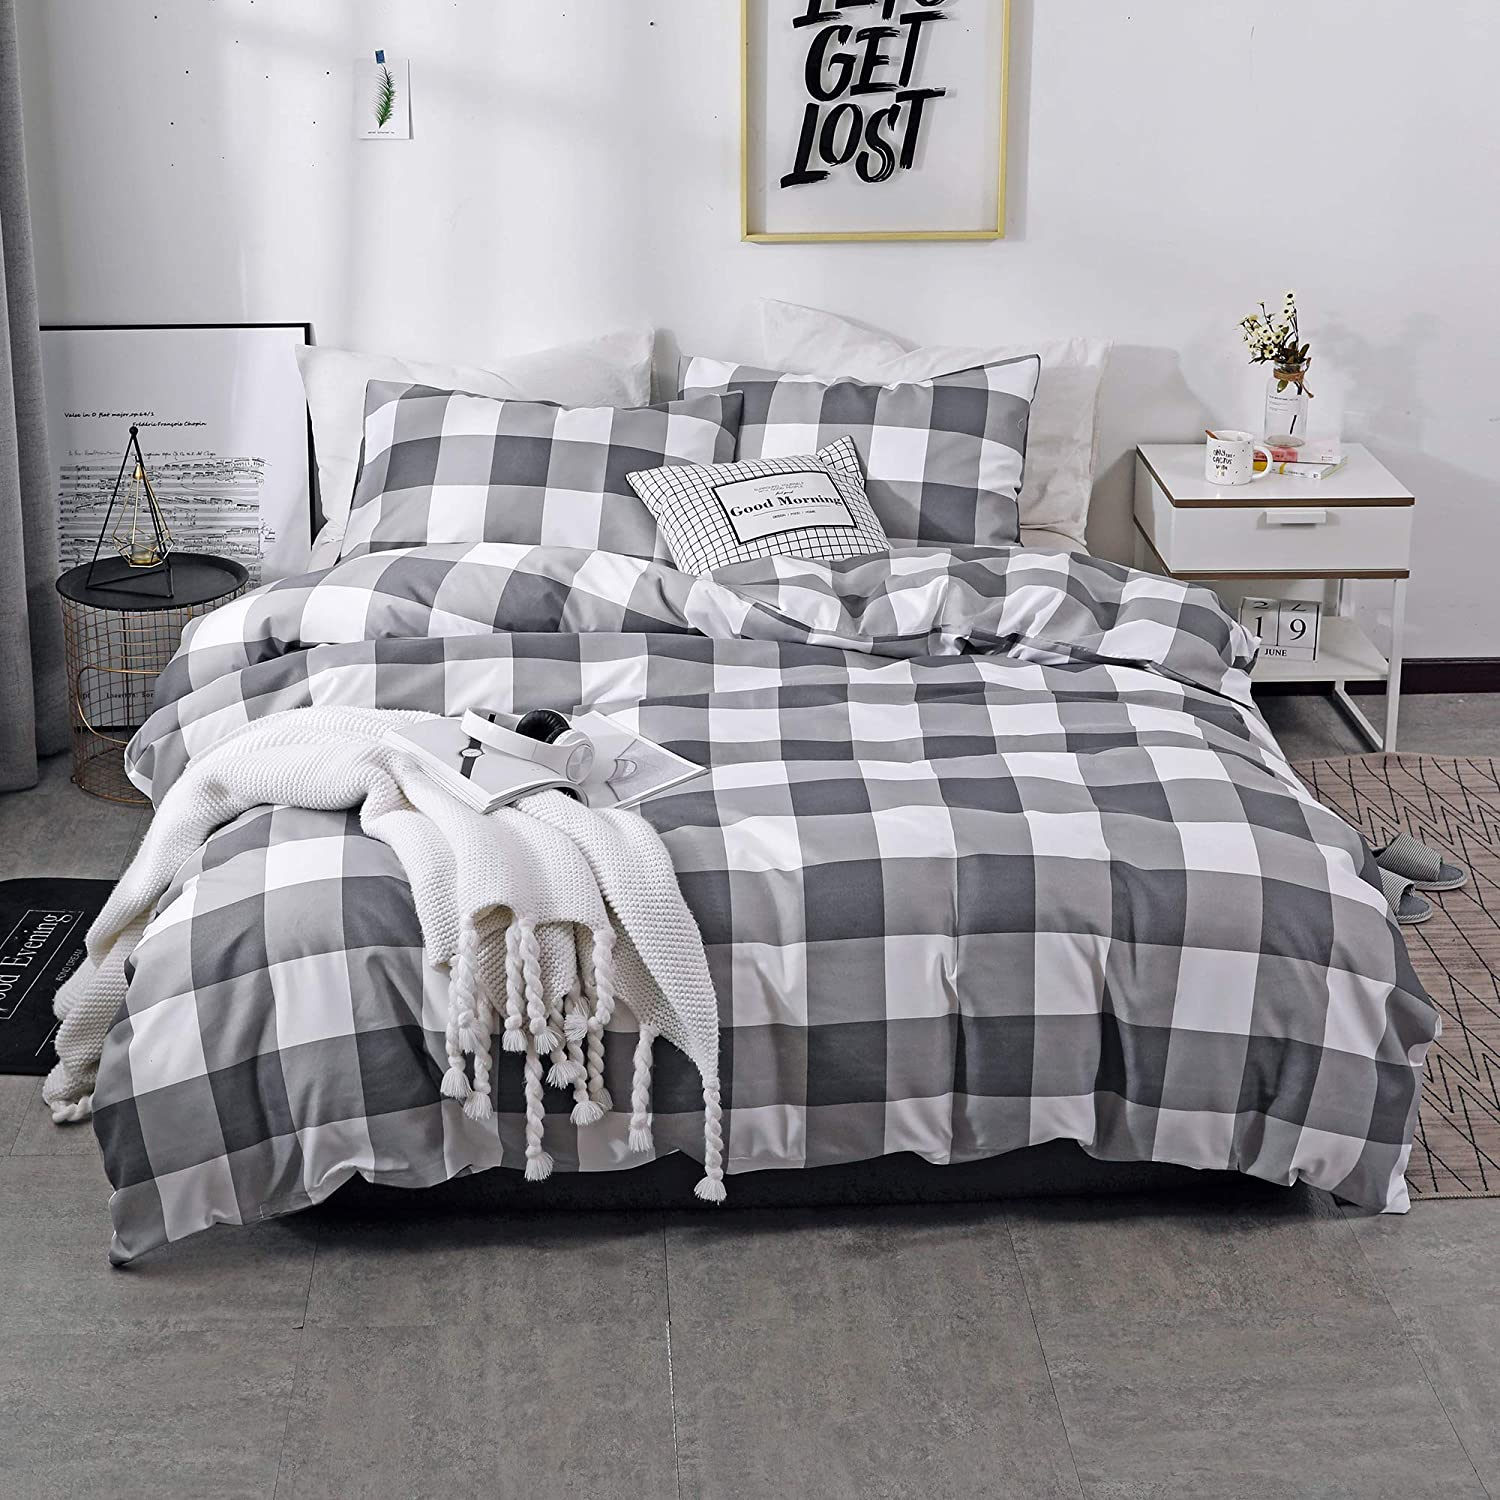 NOKOLULU Farmhouse Buffalo Check Gingham Simple Geometric Square Pattern Bedding Set Modern and Fashionable Plaid Anti Allergy Duvet Cover with Sham Set for Home (Queen, Grey)